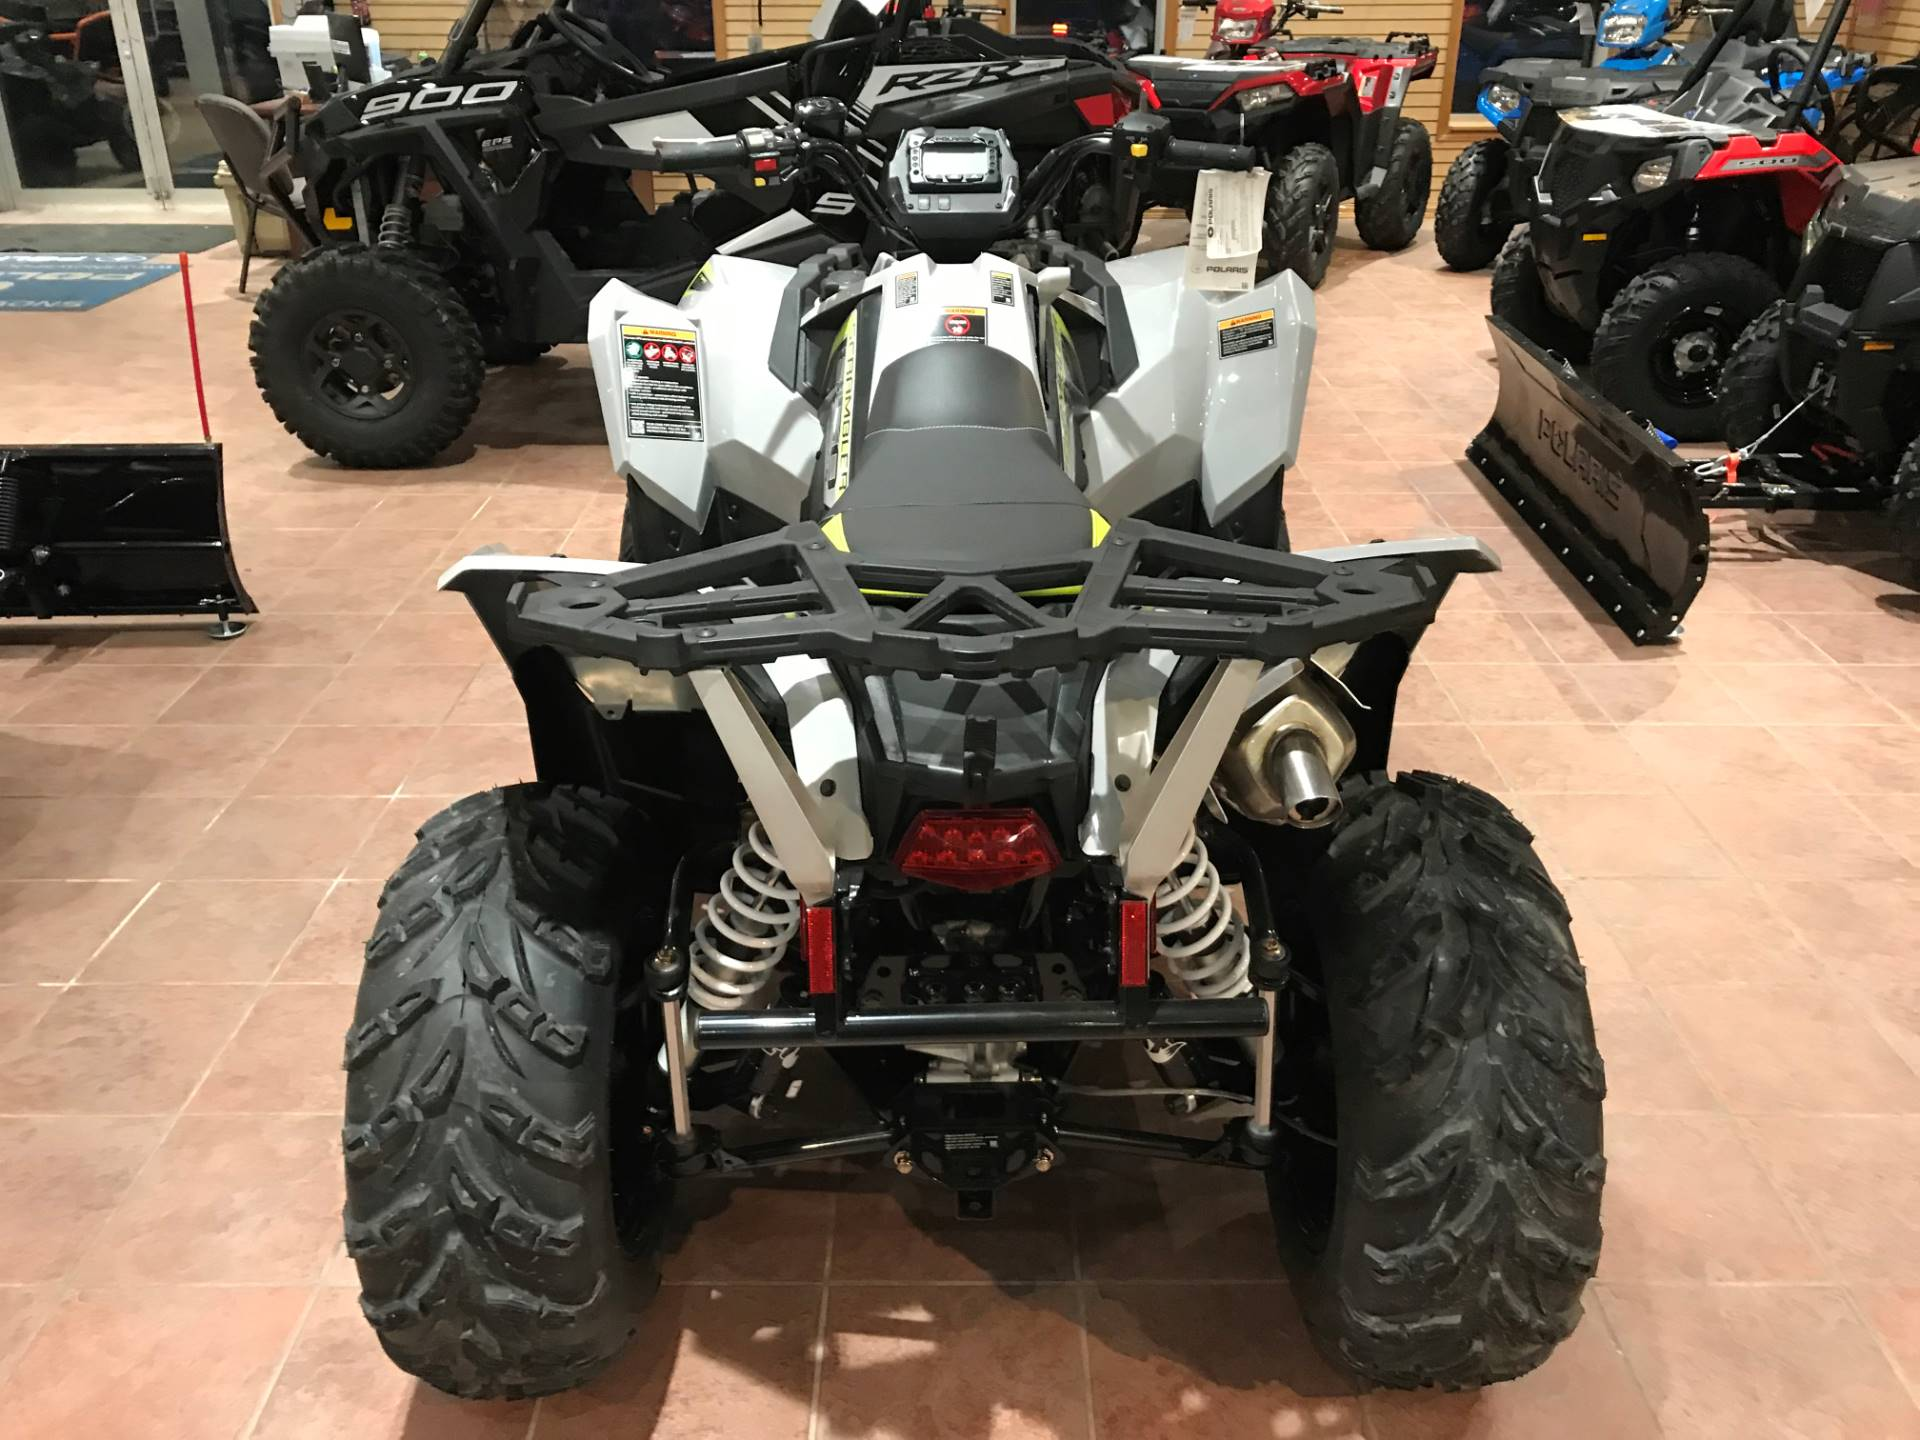 2019 Polaris Scrambler 850 in Beaver Falls, Pennsylvania - Photo 8